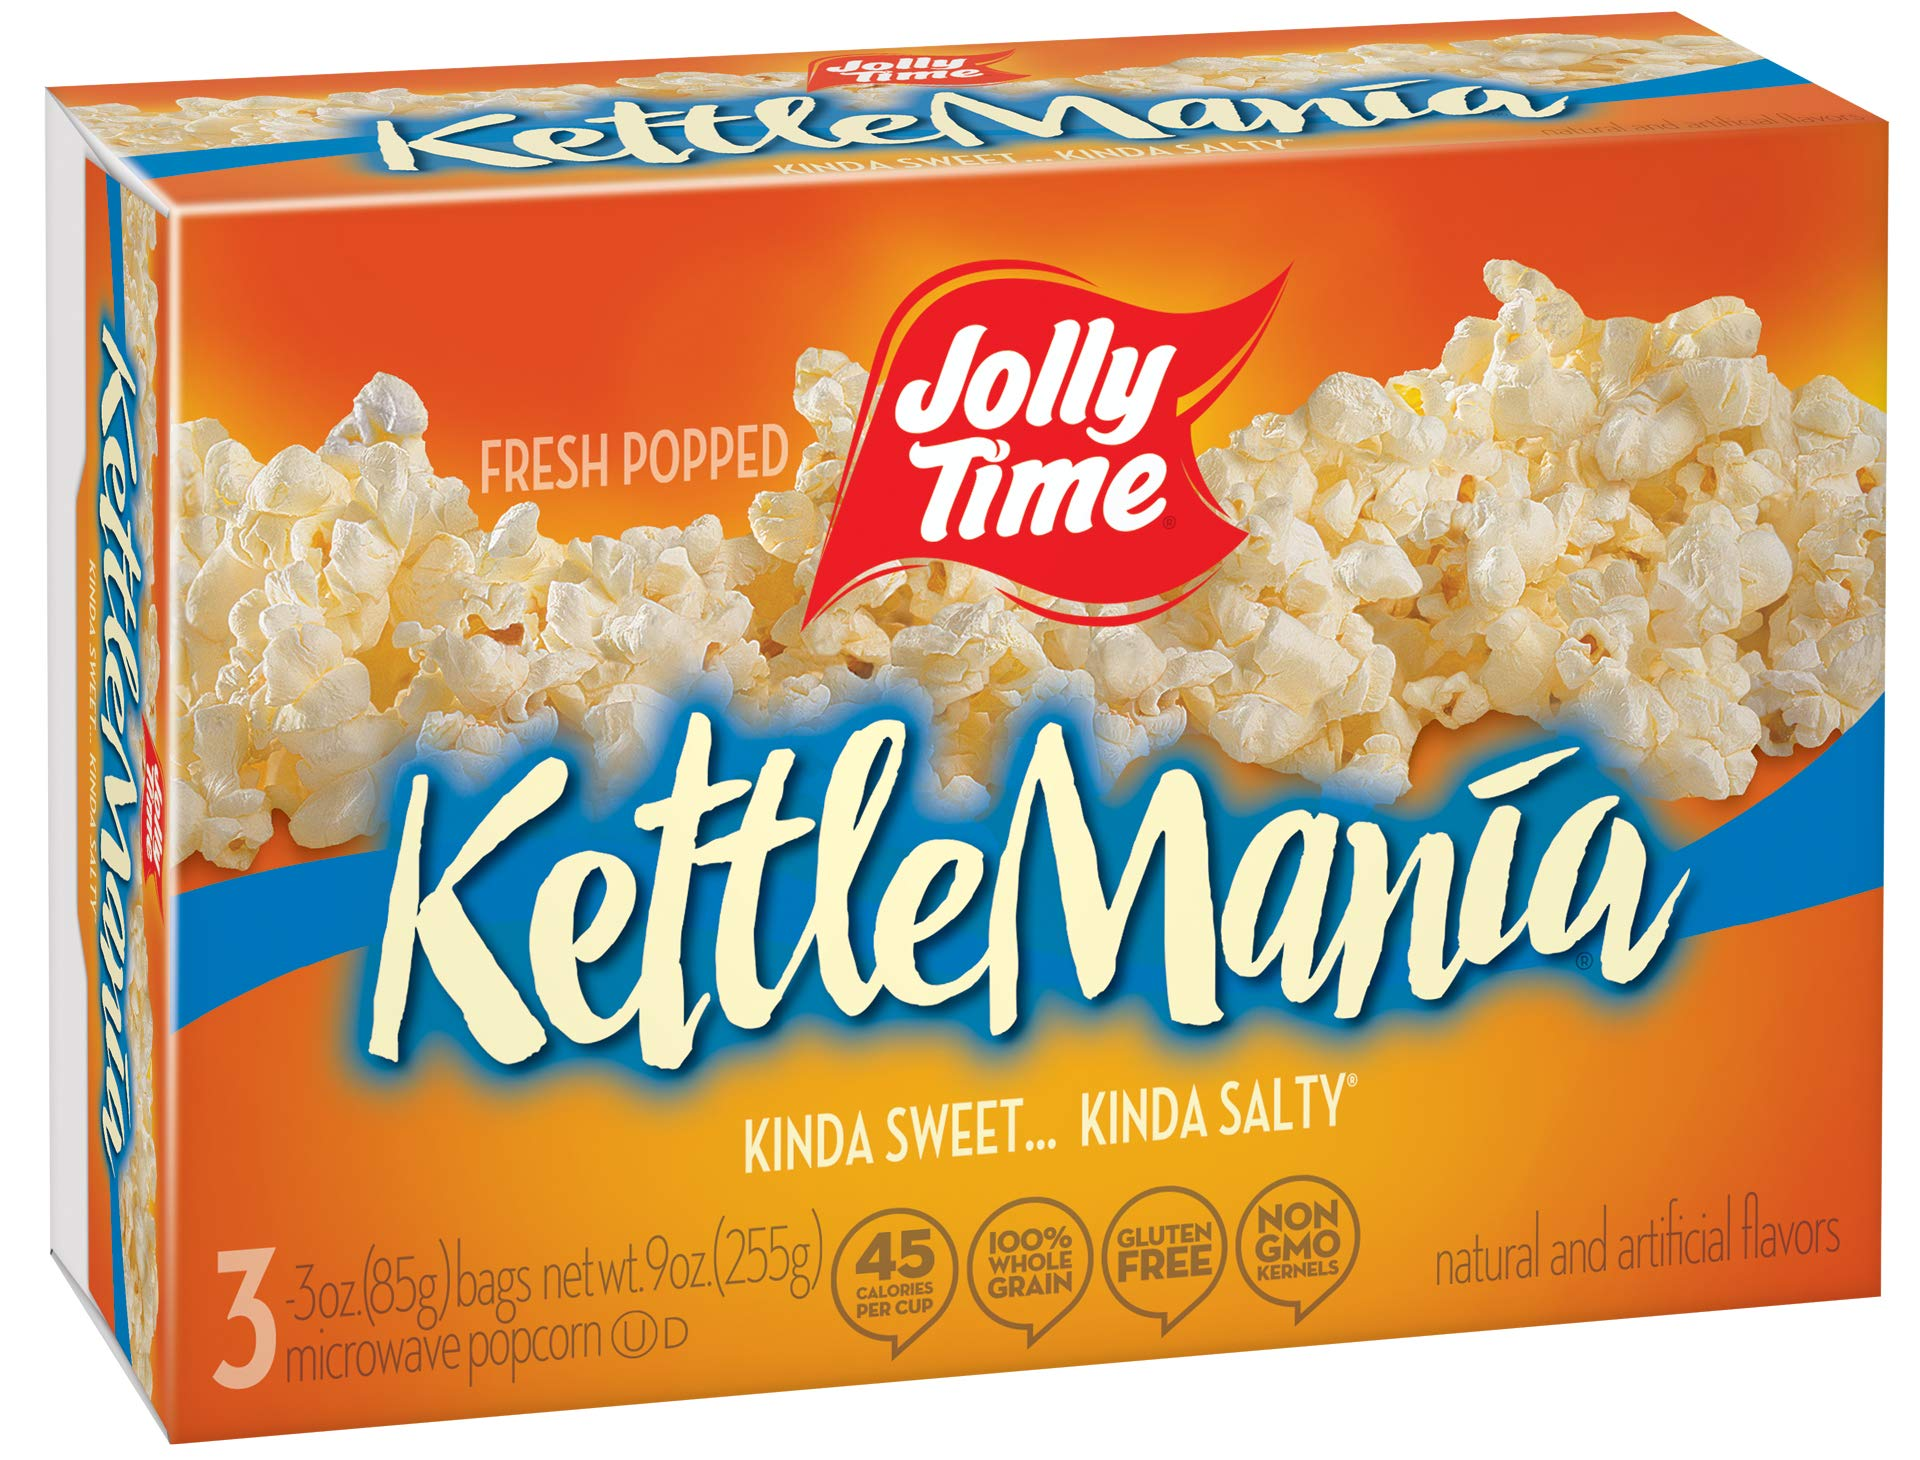 JOLLY TIME KettleMania Microwave Popcorn Sweet & Salty Gourmet Kettle Corn, 3Count (Pack of 12) by Jolly Time